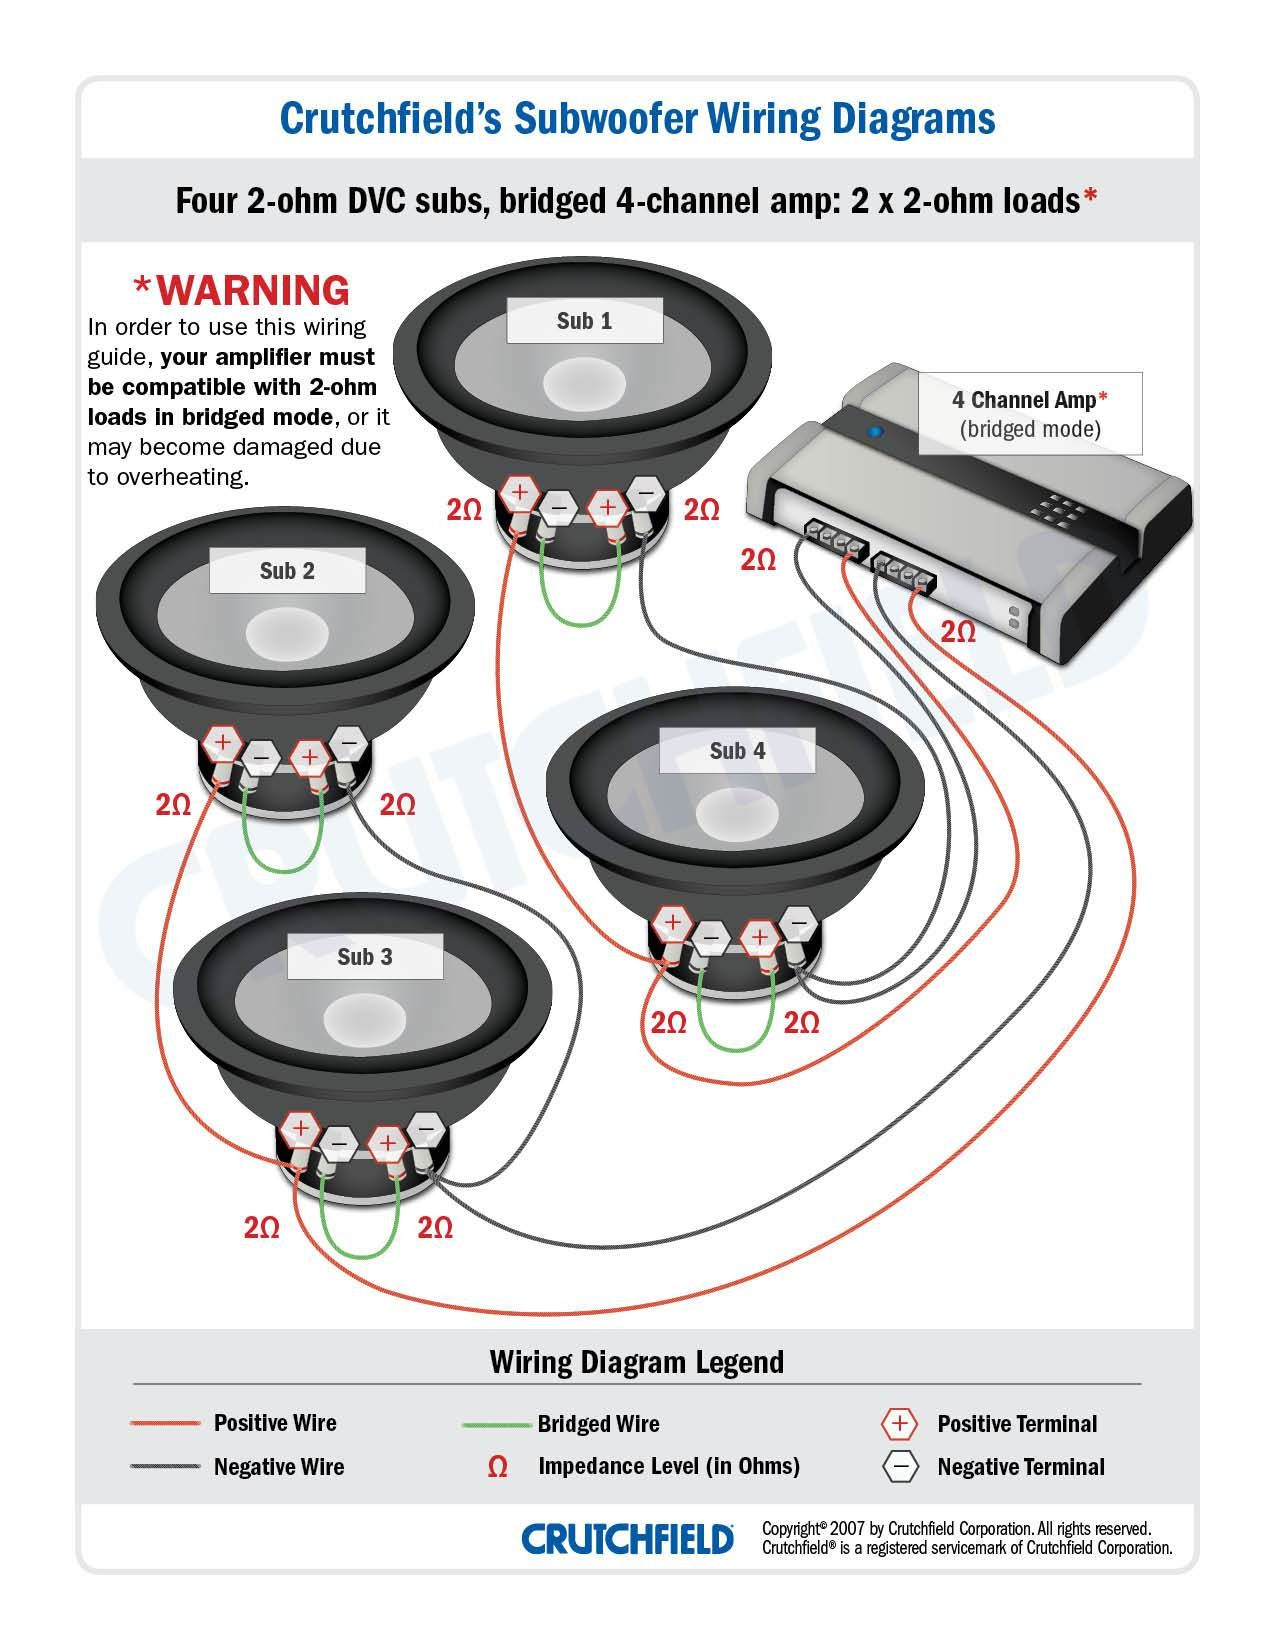 Subwoofer Wiring Diagrams Throughout 4 Ohm Dual Voice Coil Diagram - 4 Ohm Dual Voice Coil Wiring Diagram